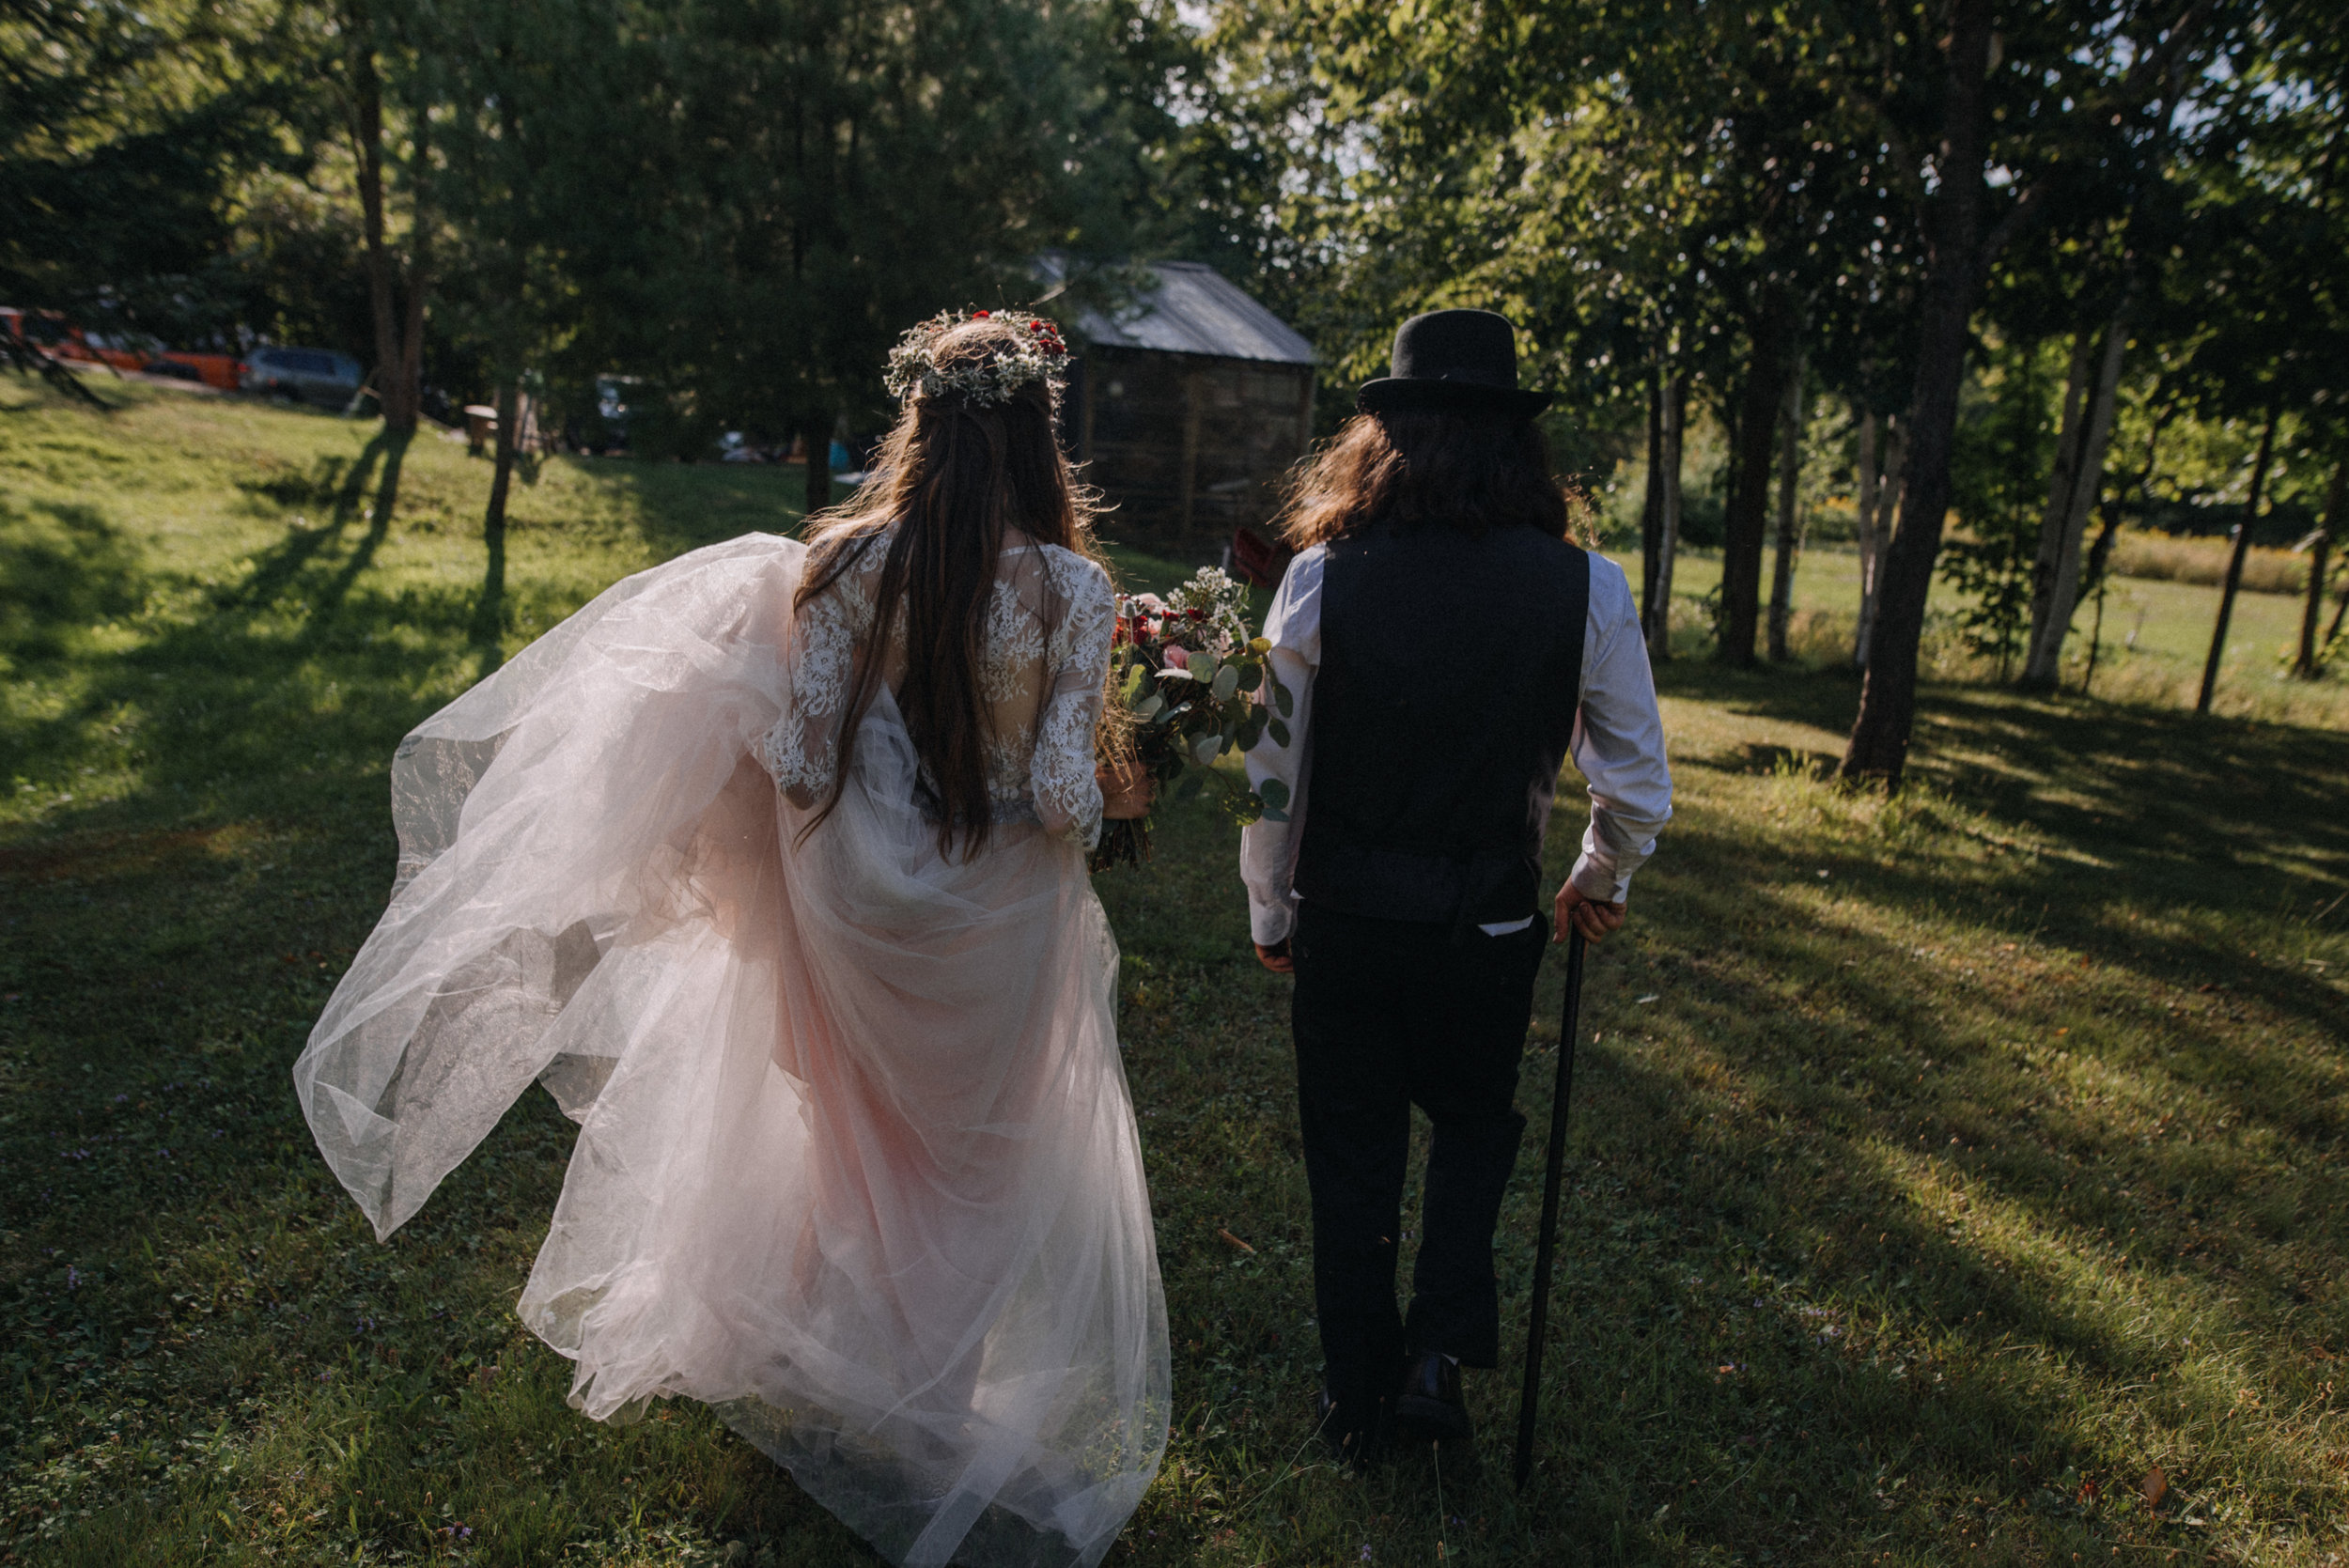 ottawa_wedding_photographer_gatineau_photographe_mariage_documentary_candid_photojournalist_natural_raw_boho_wedding_backyard (30).JPG